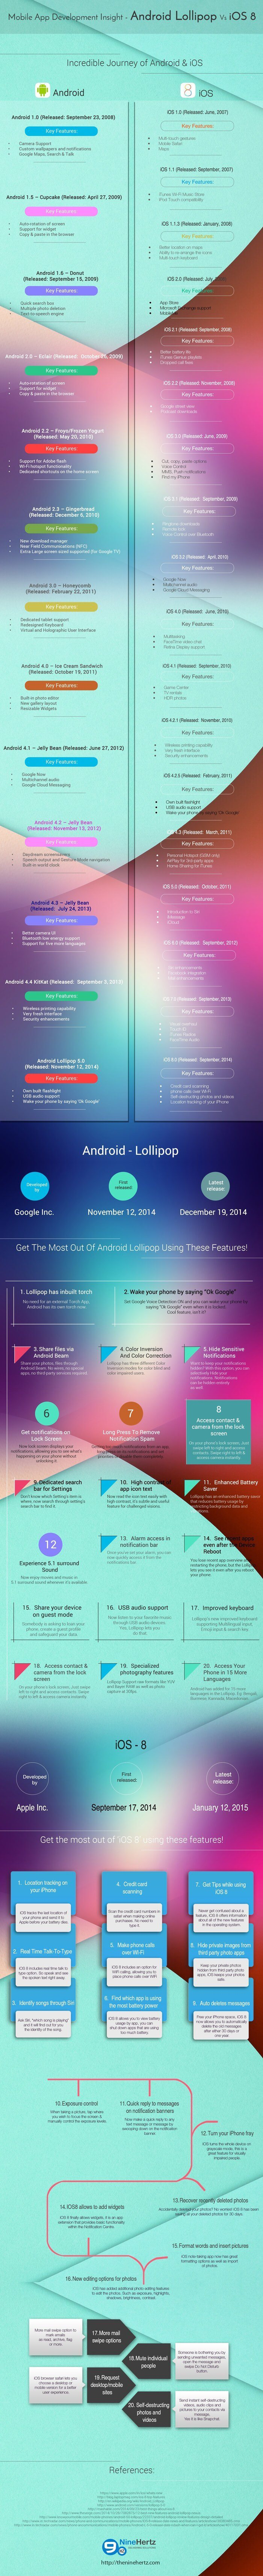 Android-Lollipop-vs-iOS-8-Infographic